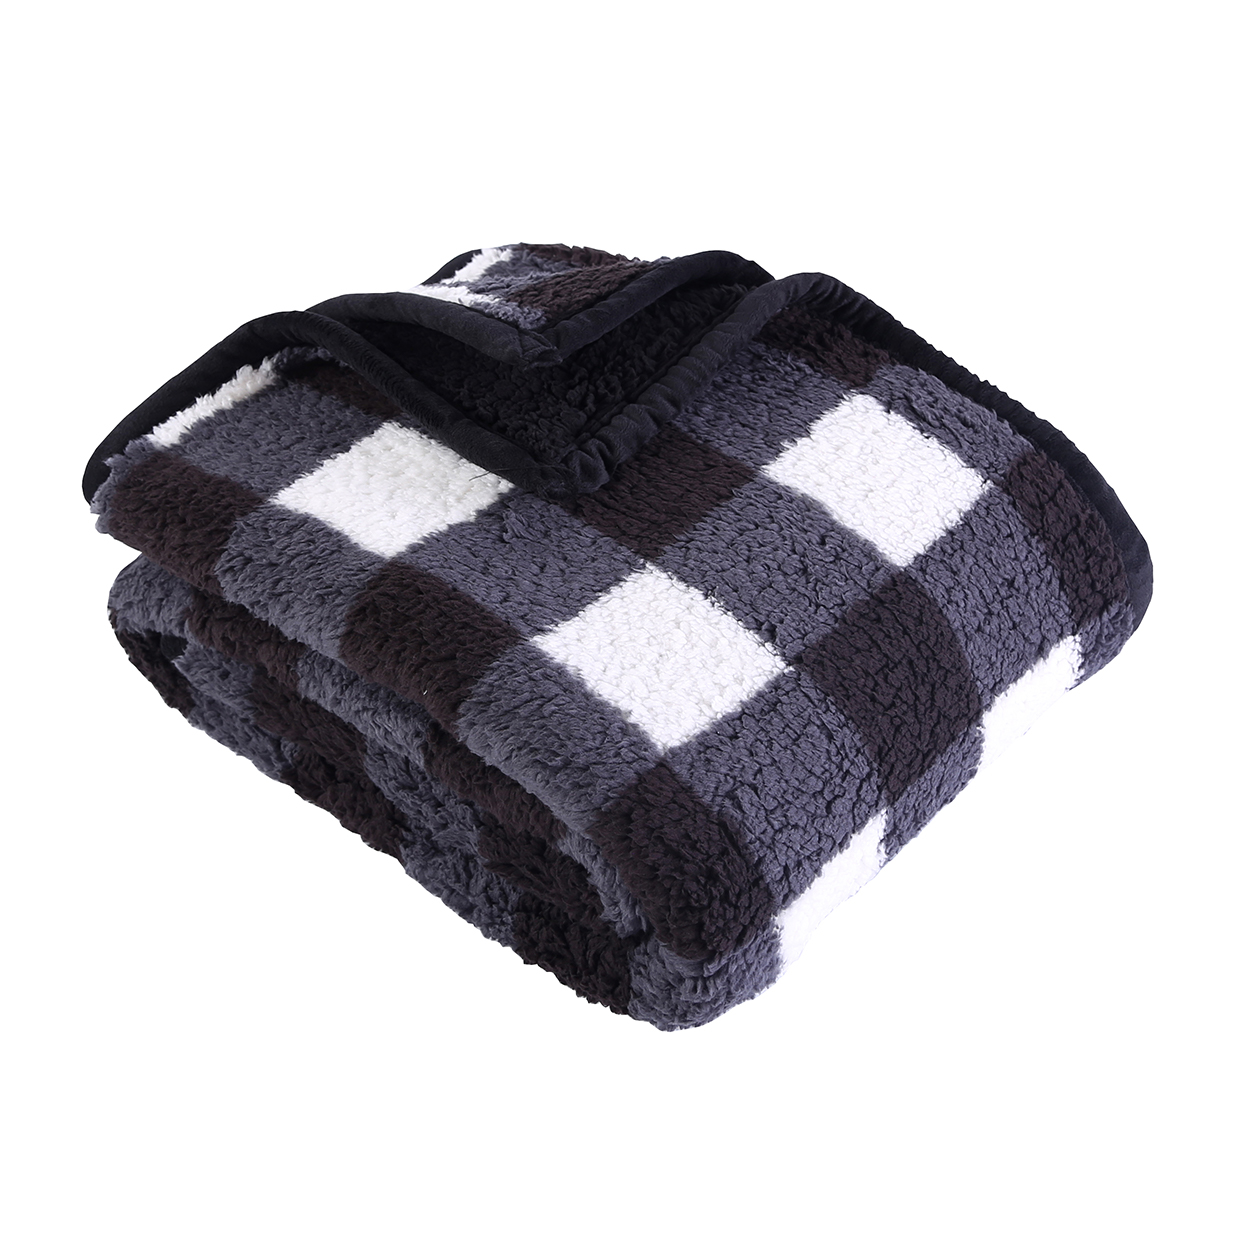 "Better Homes & Gardens Sherpa Throw Blanket, 50"" x 60"", Black Plaid"